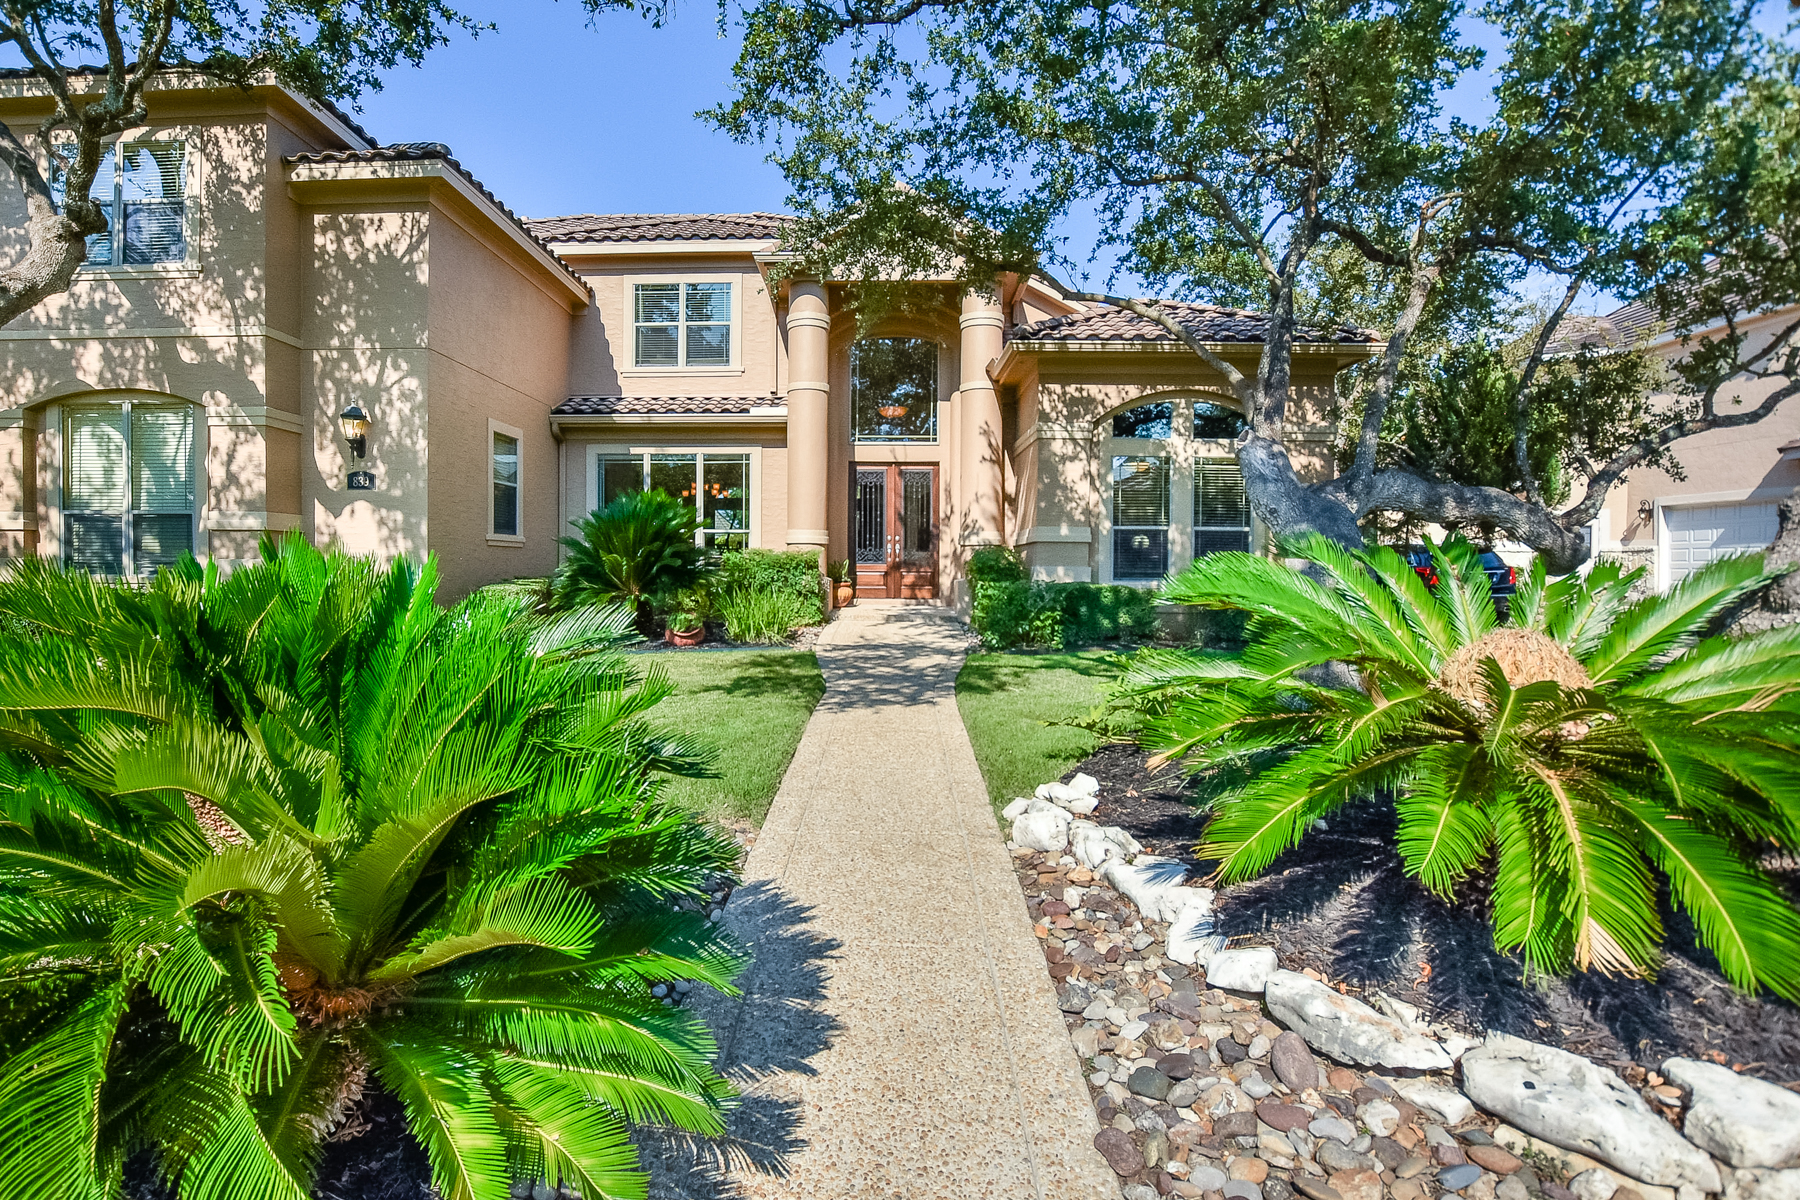 Single Family Home for Sale at Immaculate Home in Estates at Canyon Springs 839 Hansen Grns San Antonio, Texas, 78260 United States